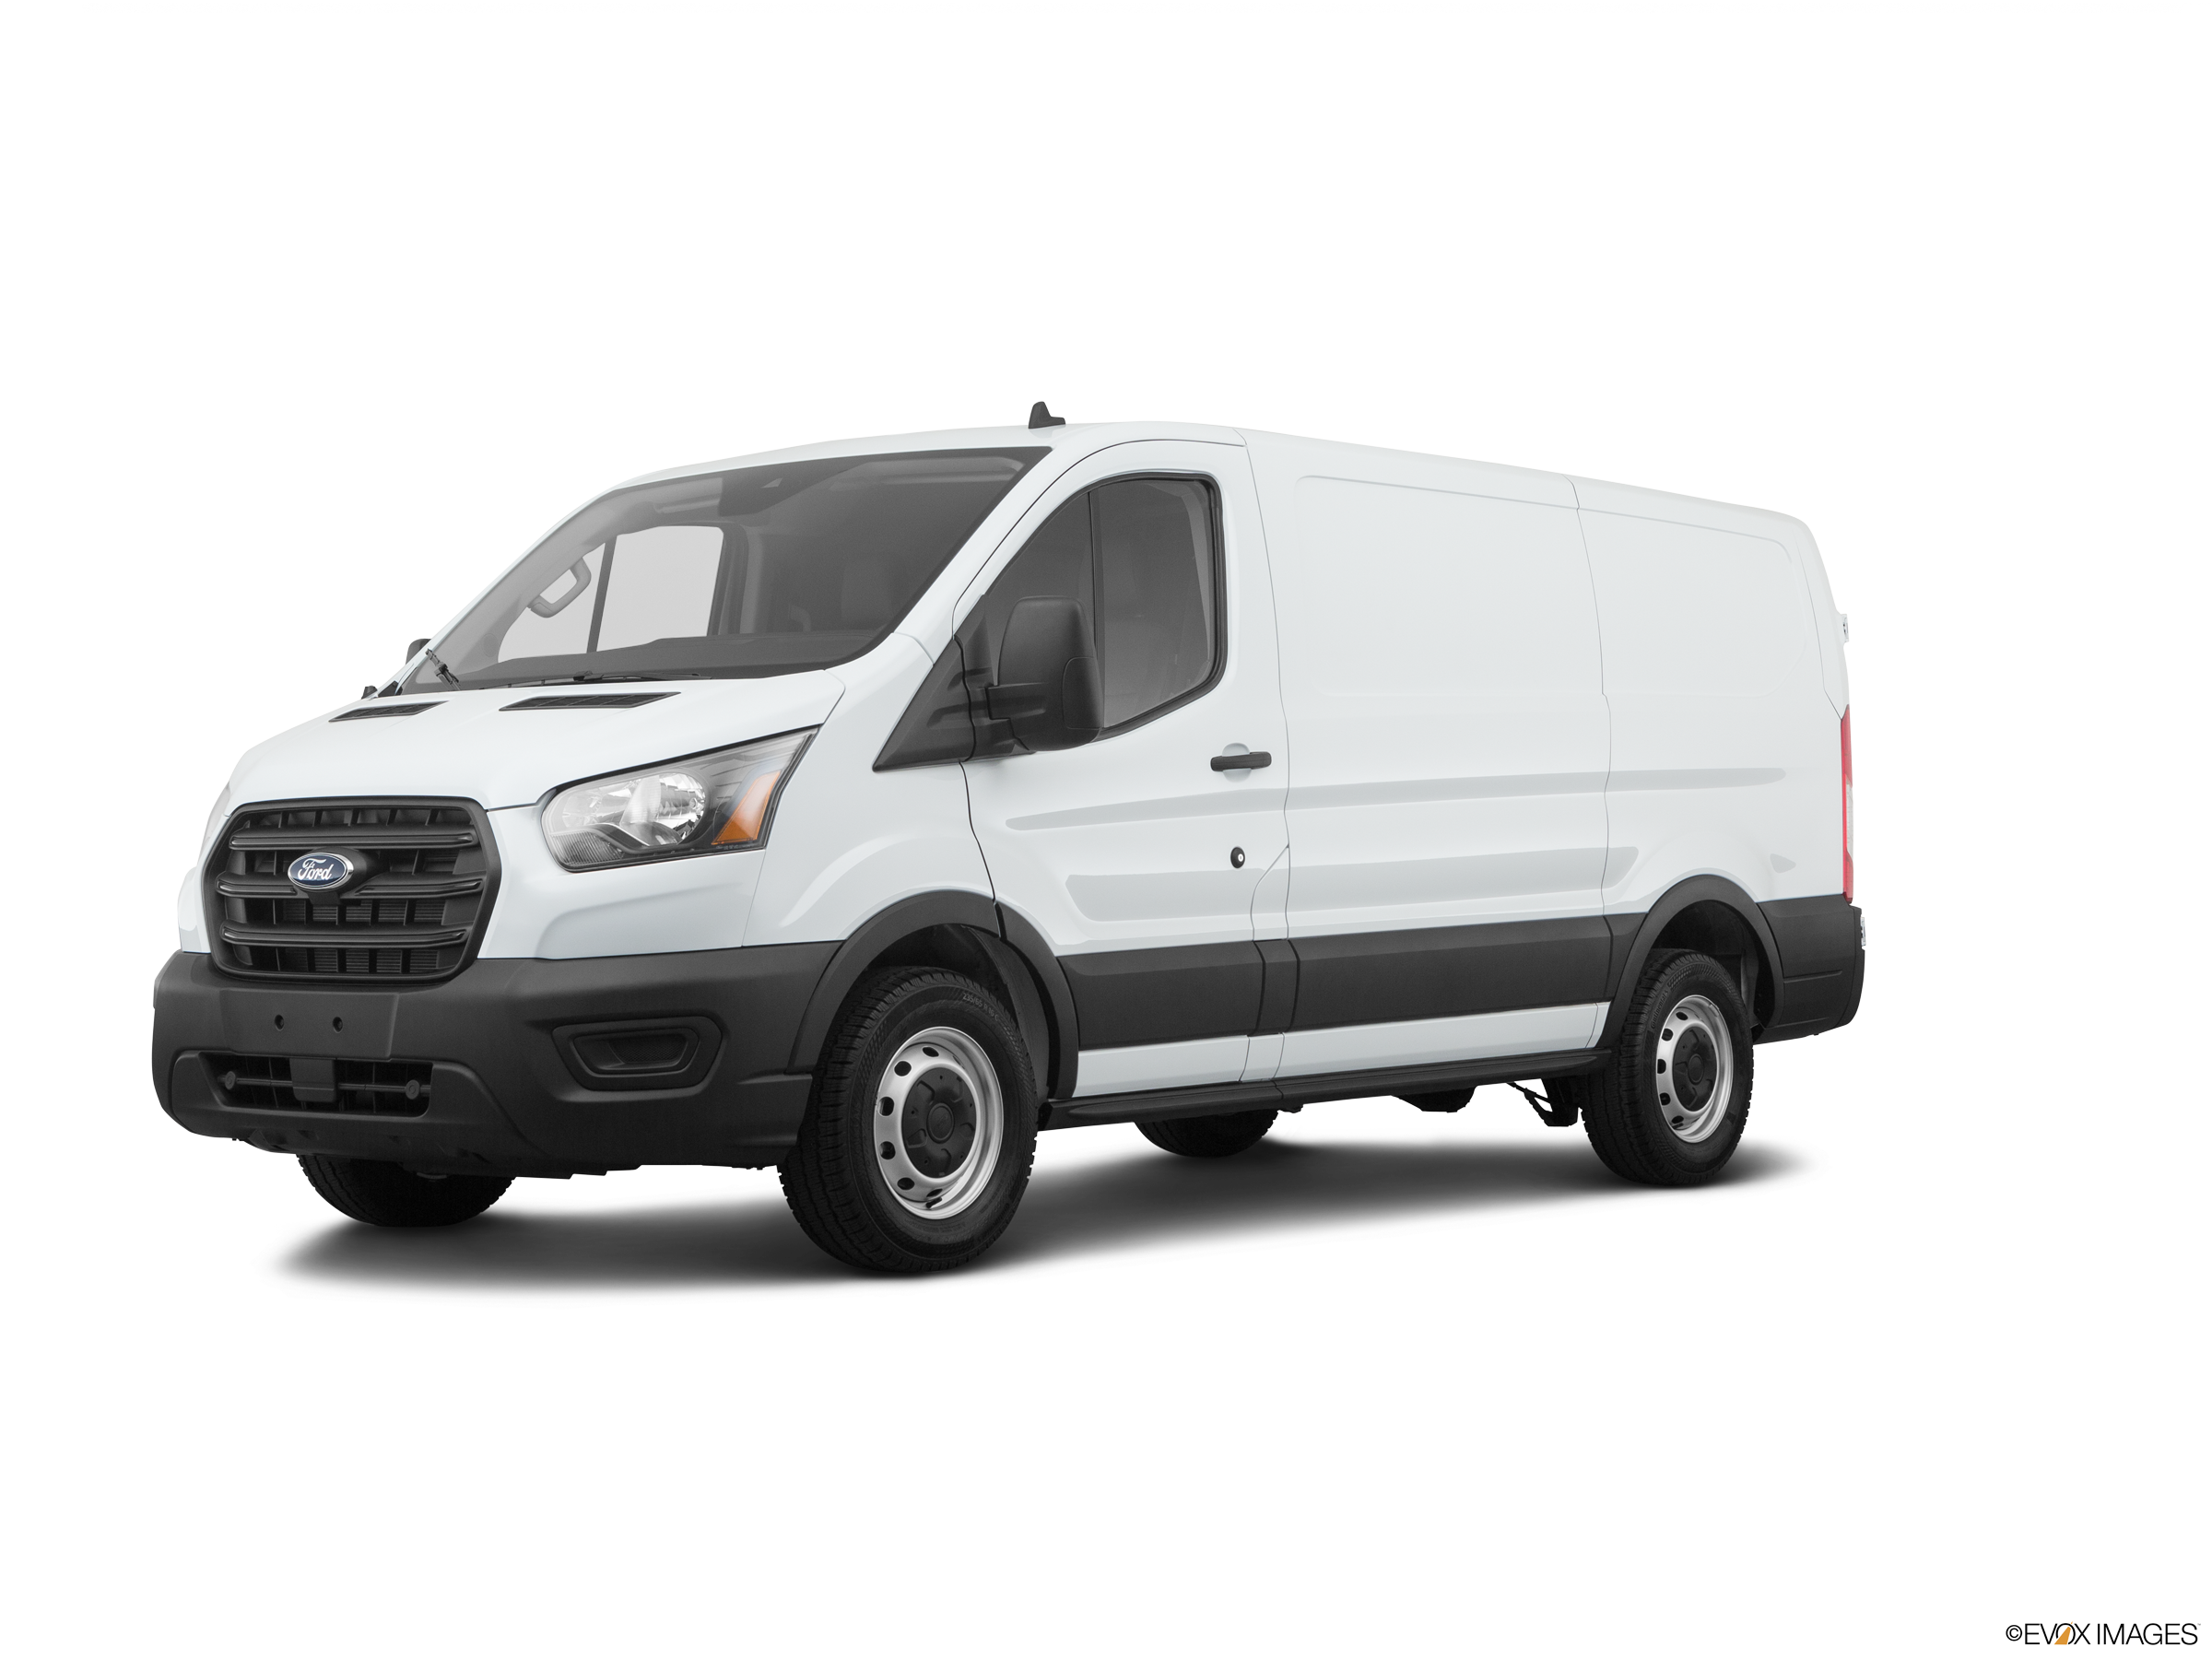 2020 ford transit 150 crew van prices reviews pictures kelley blue book 2020 ford transit 150 crew van prices